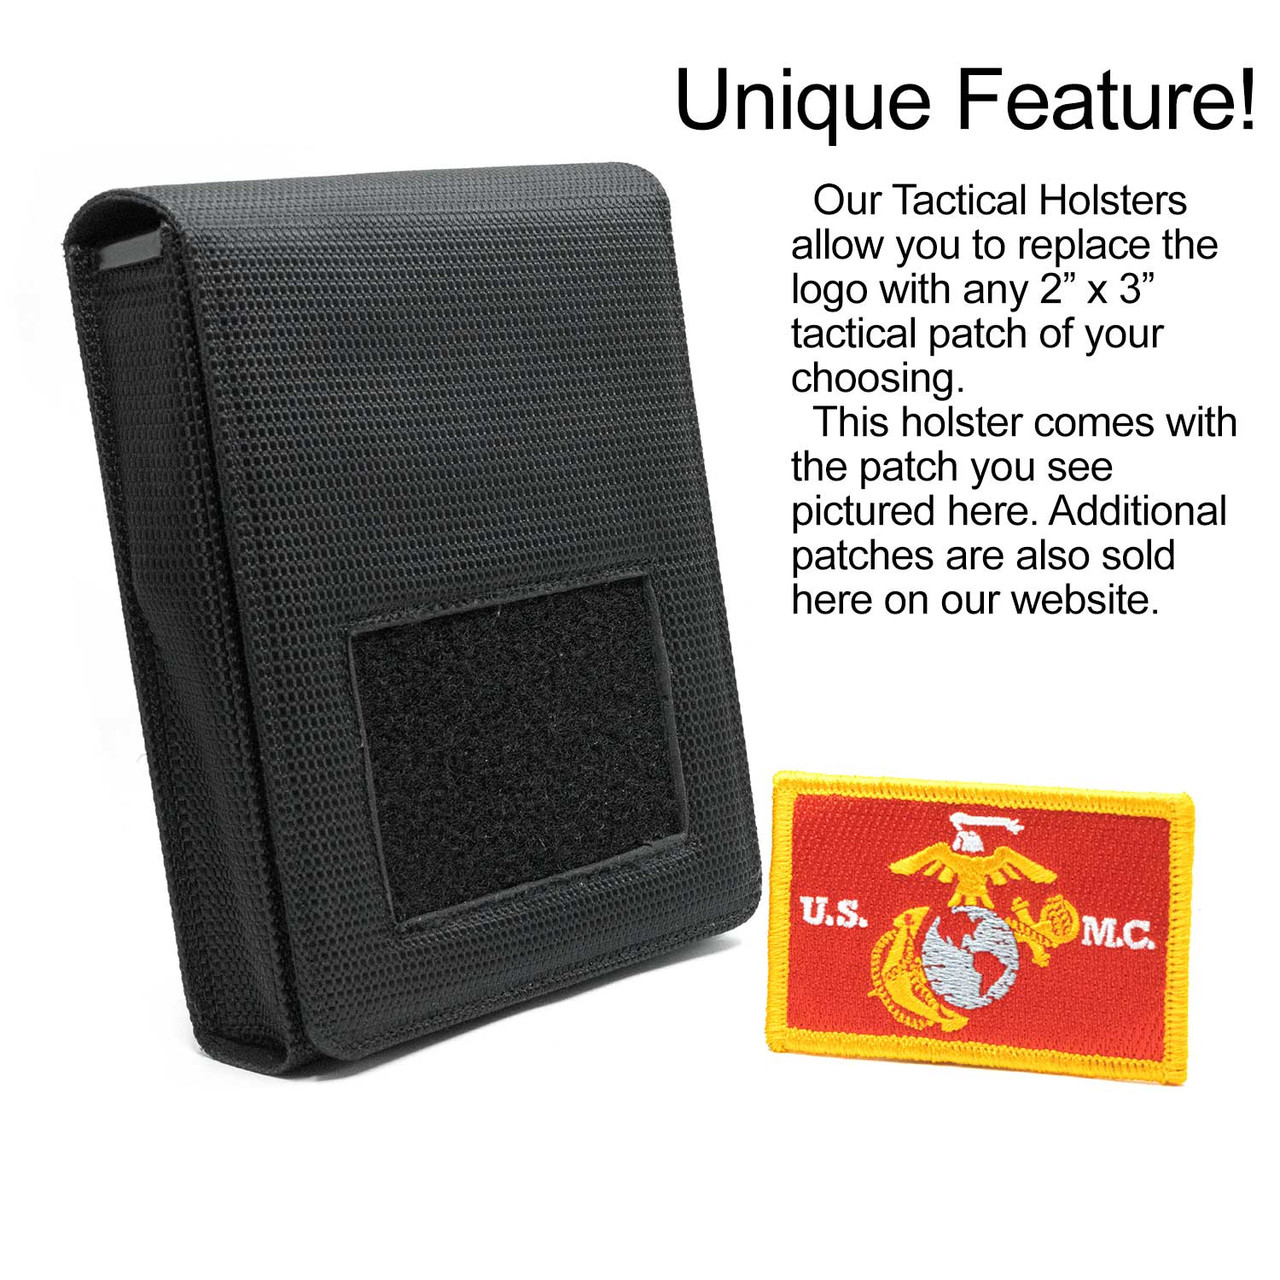 Ruger Security 9 Marine Corps Tactical Patch Holster